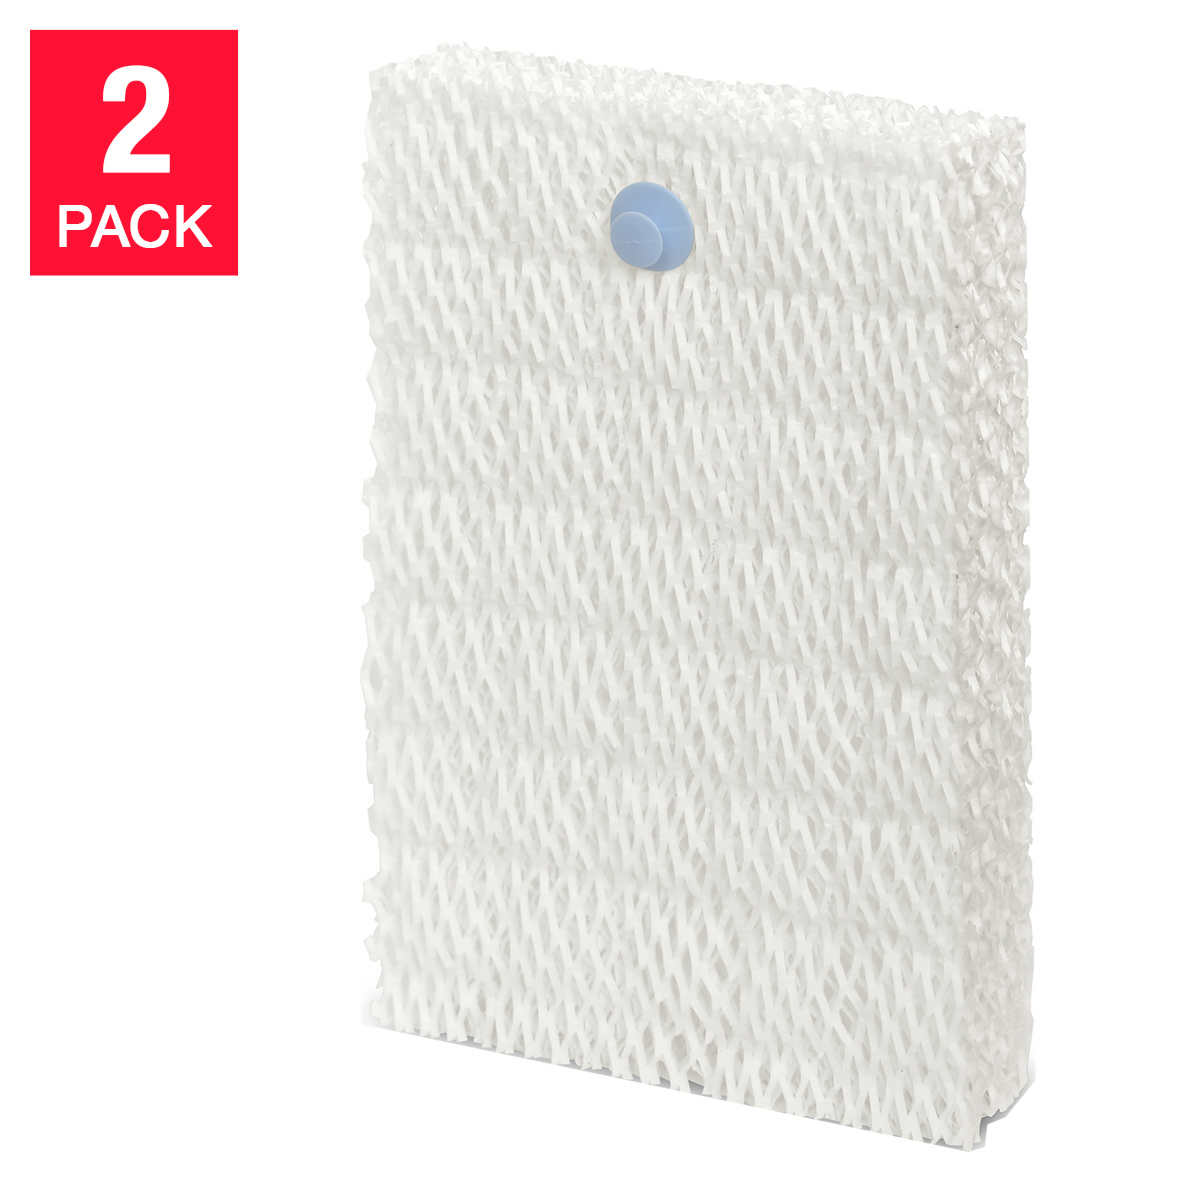 Bionaire Washable Long Life Cool Mist Filter 2 Pack